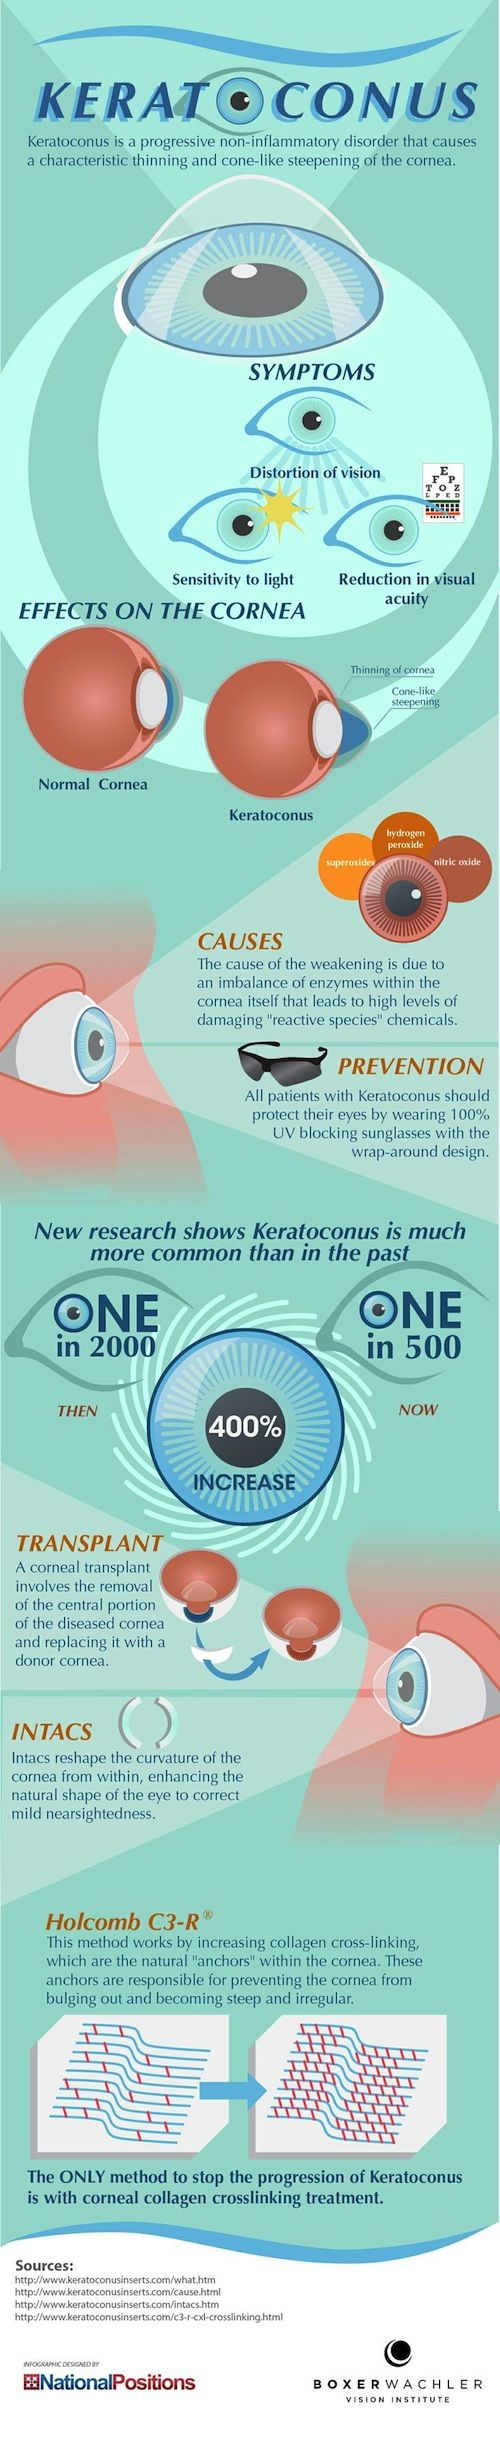 eye-info-keratoconus